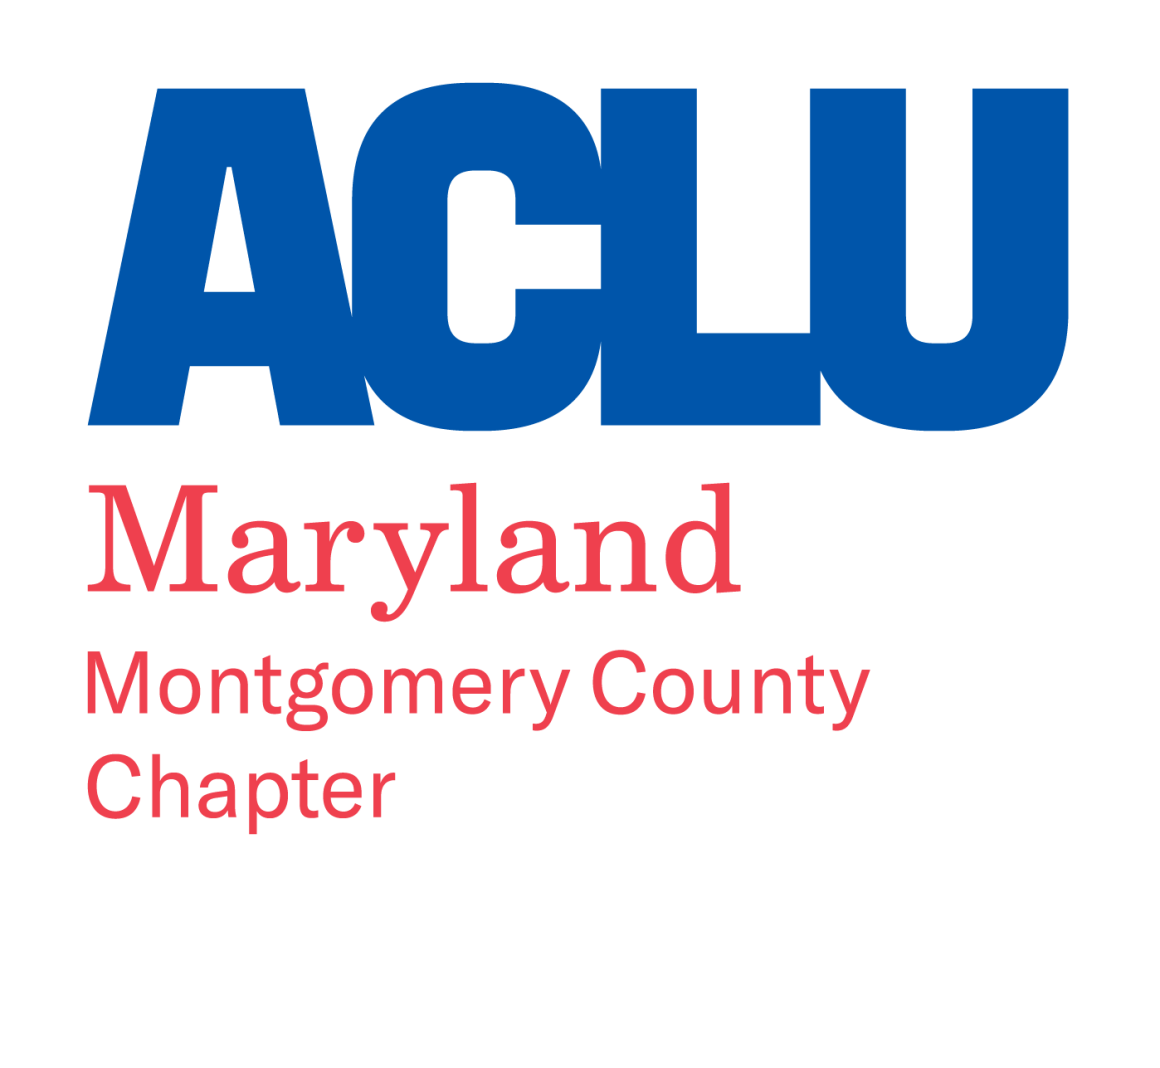 Montgomery County Chapter